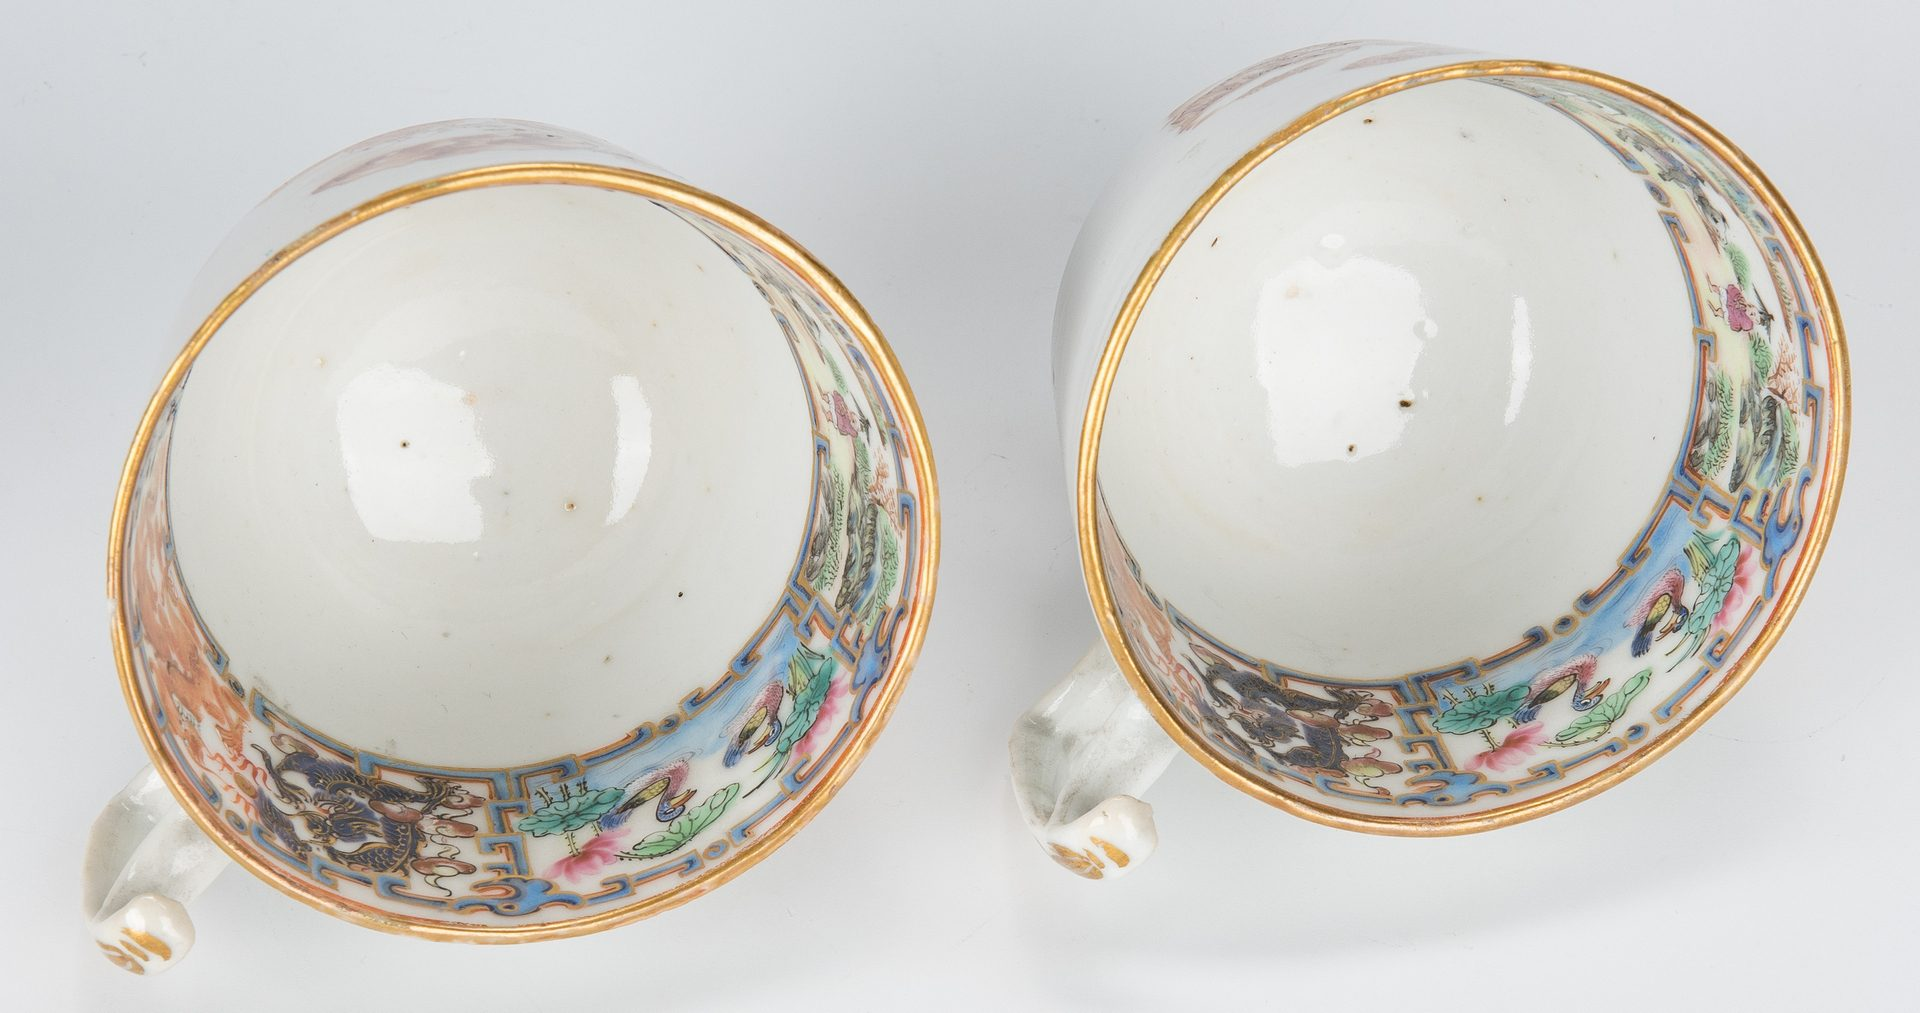 Lot 23: 16 pcs Chinese Export Porcelain, 16 pcs incl. Baskets